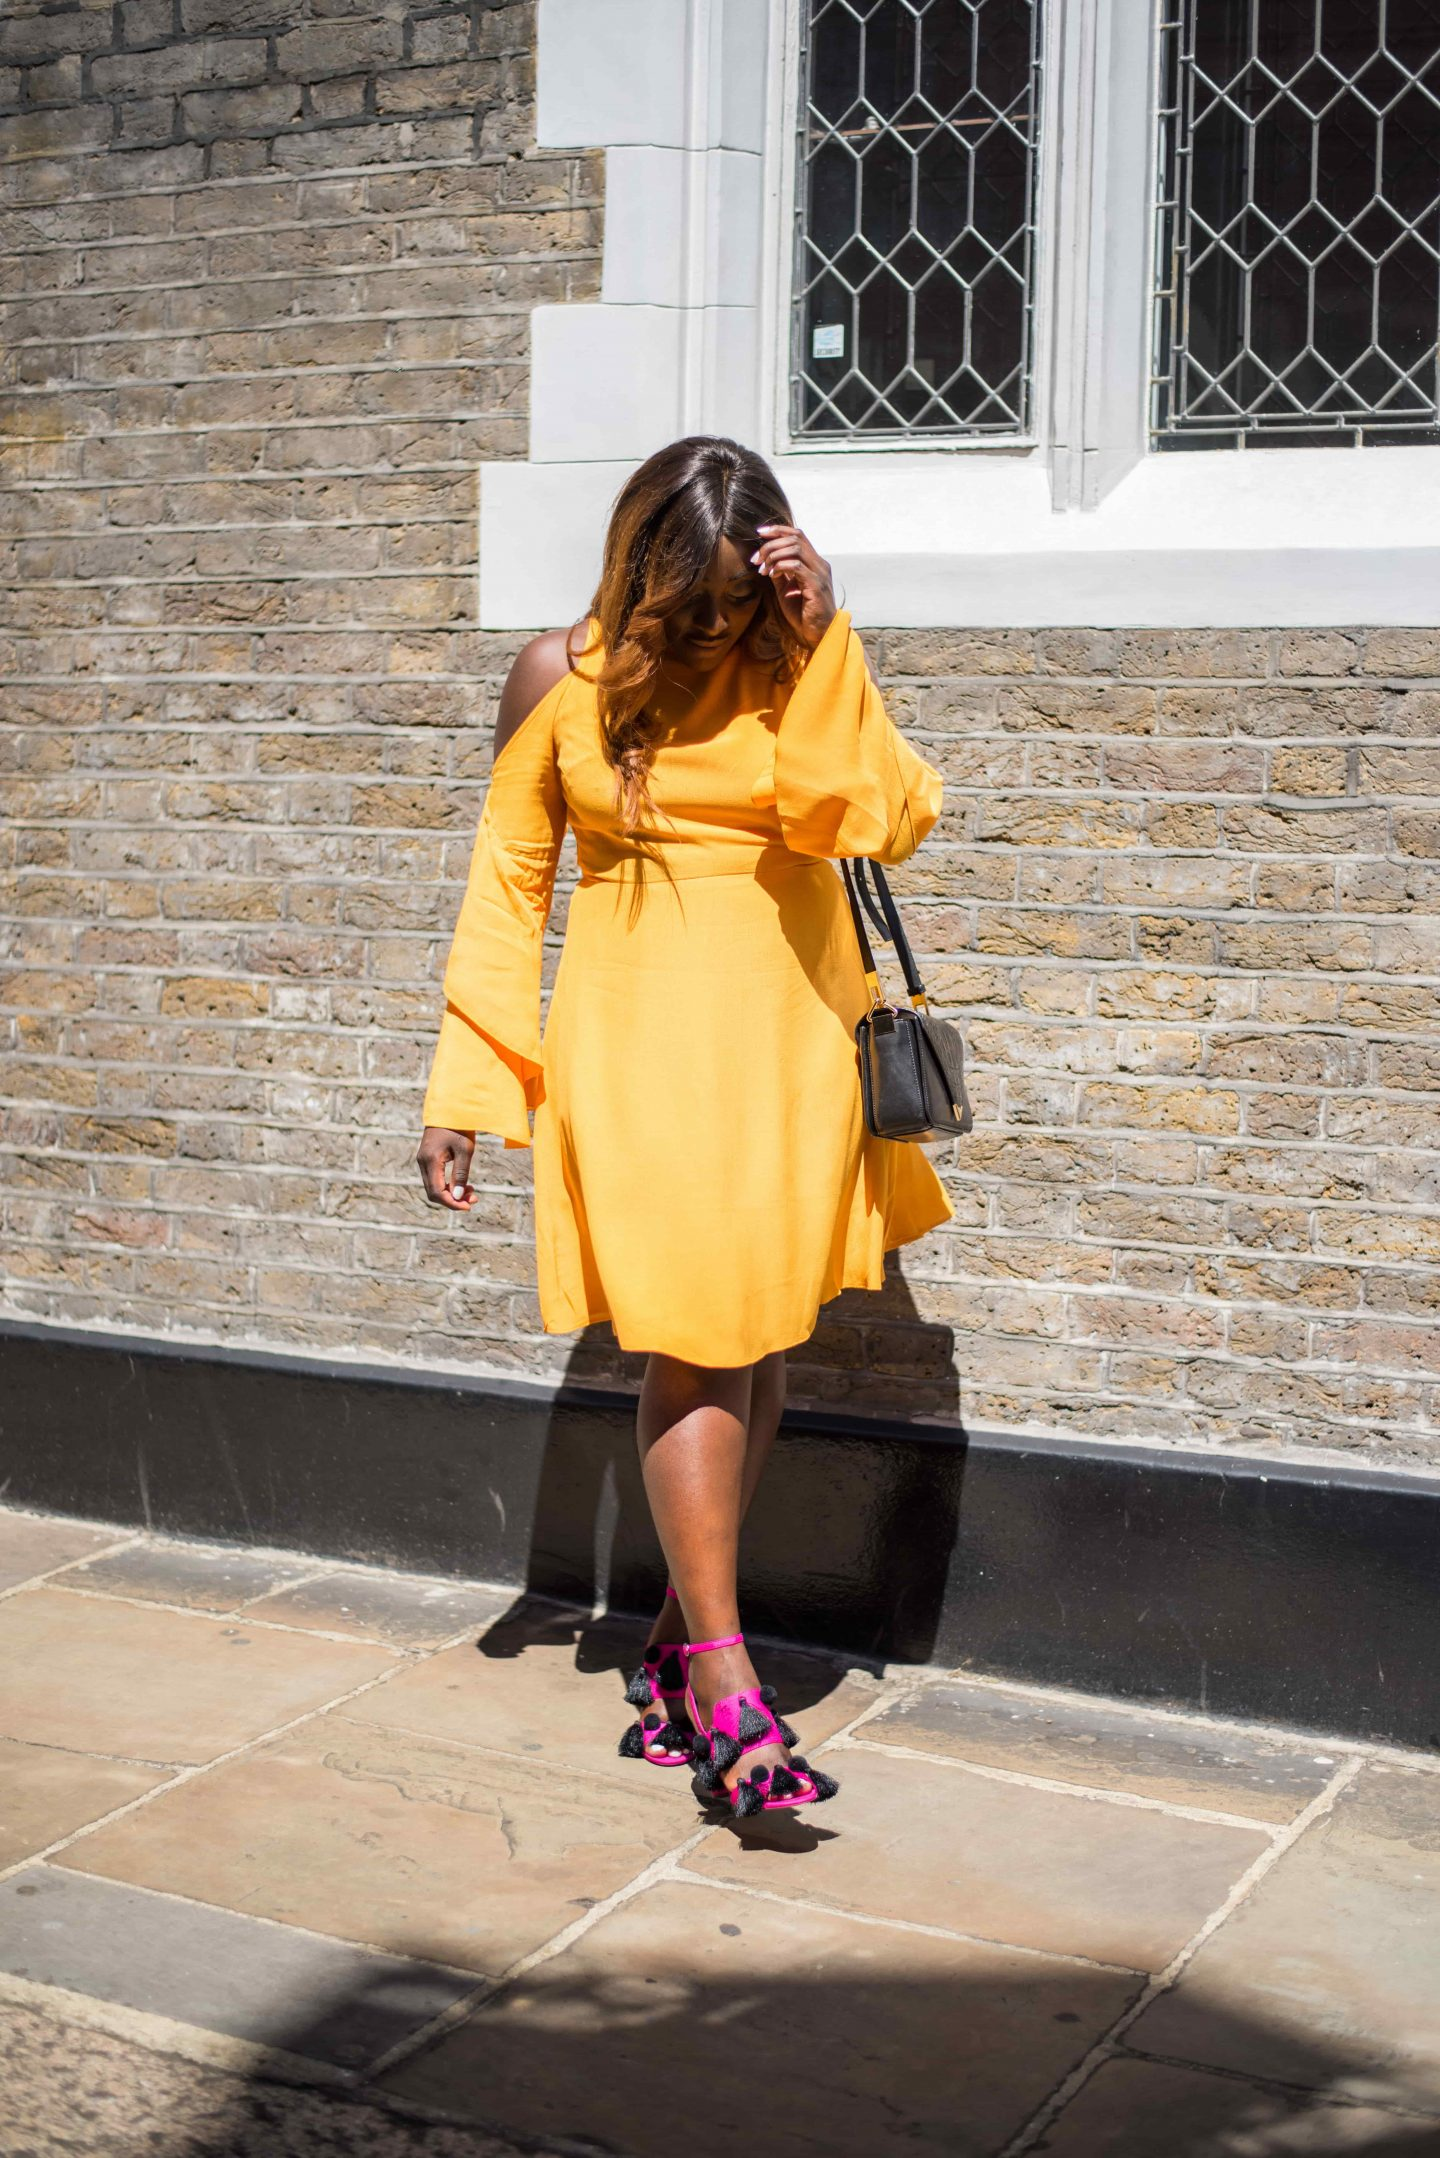 Colour Popping & Midi Dresses - NK-AD fashion mustard dress - Top Shop Pink Shoes - Alexander Wang prisma bag - Style and the Sass